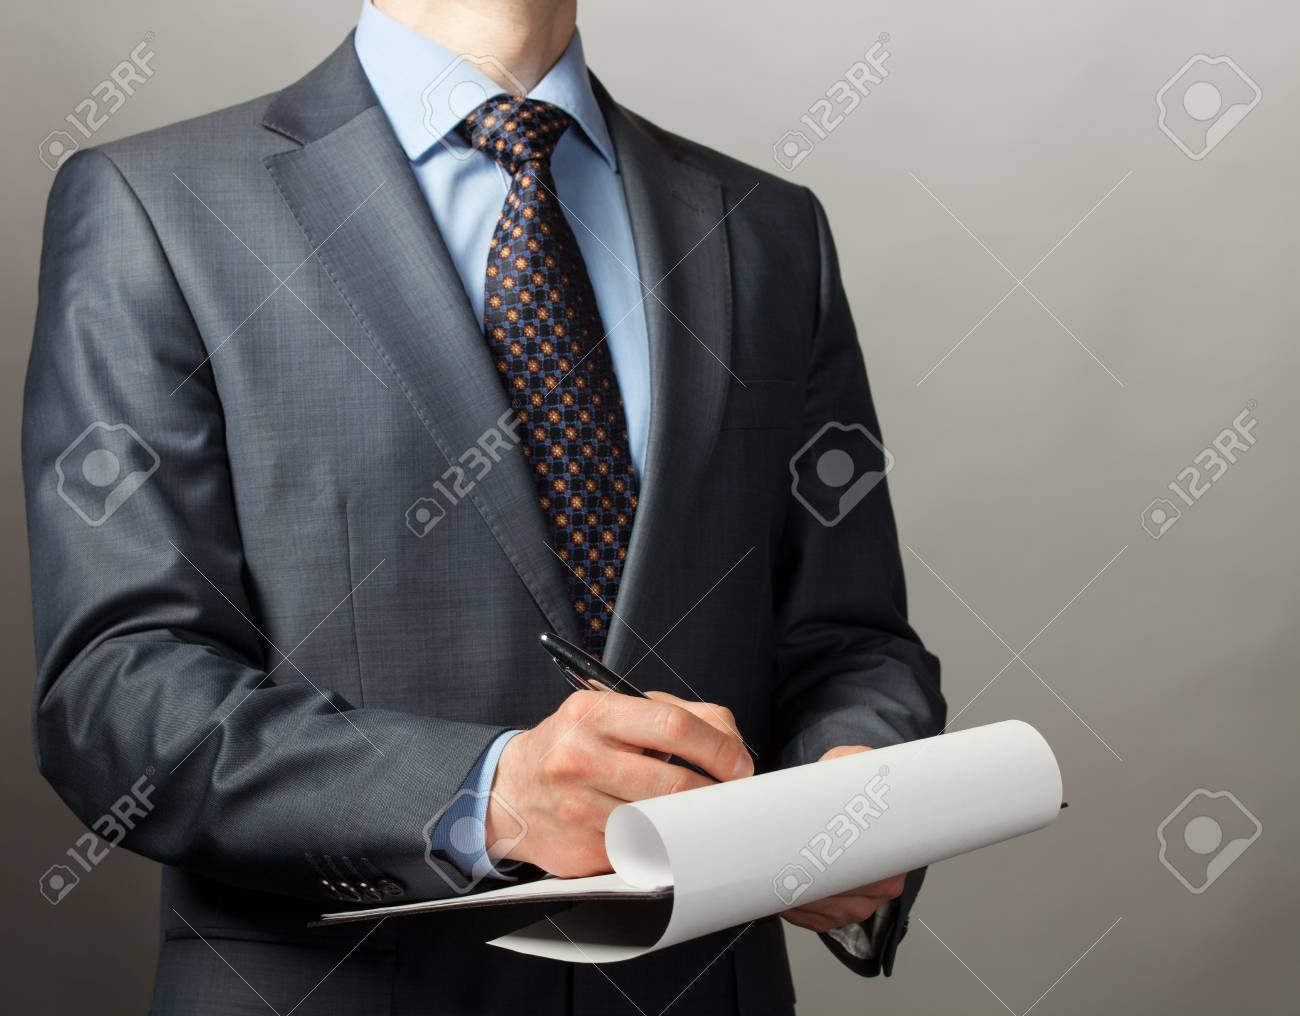 Businessman making notes on the paper, grey background - 19310674